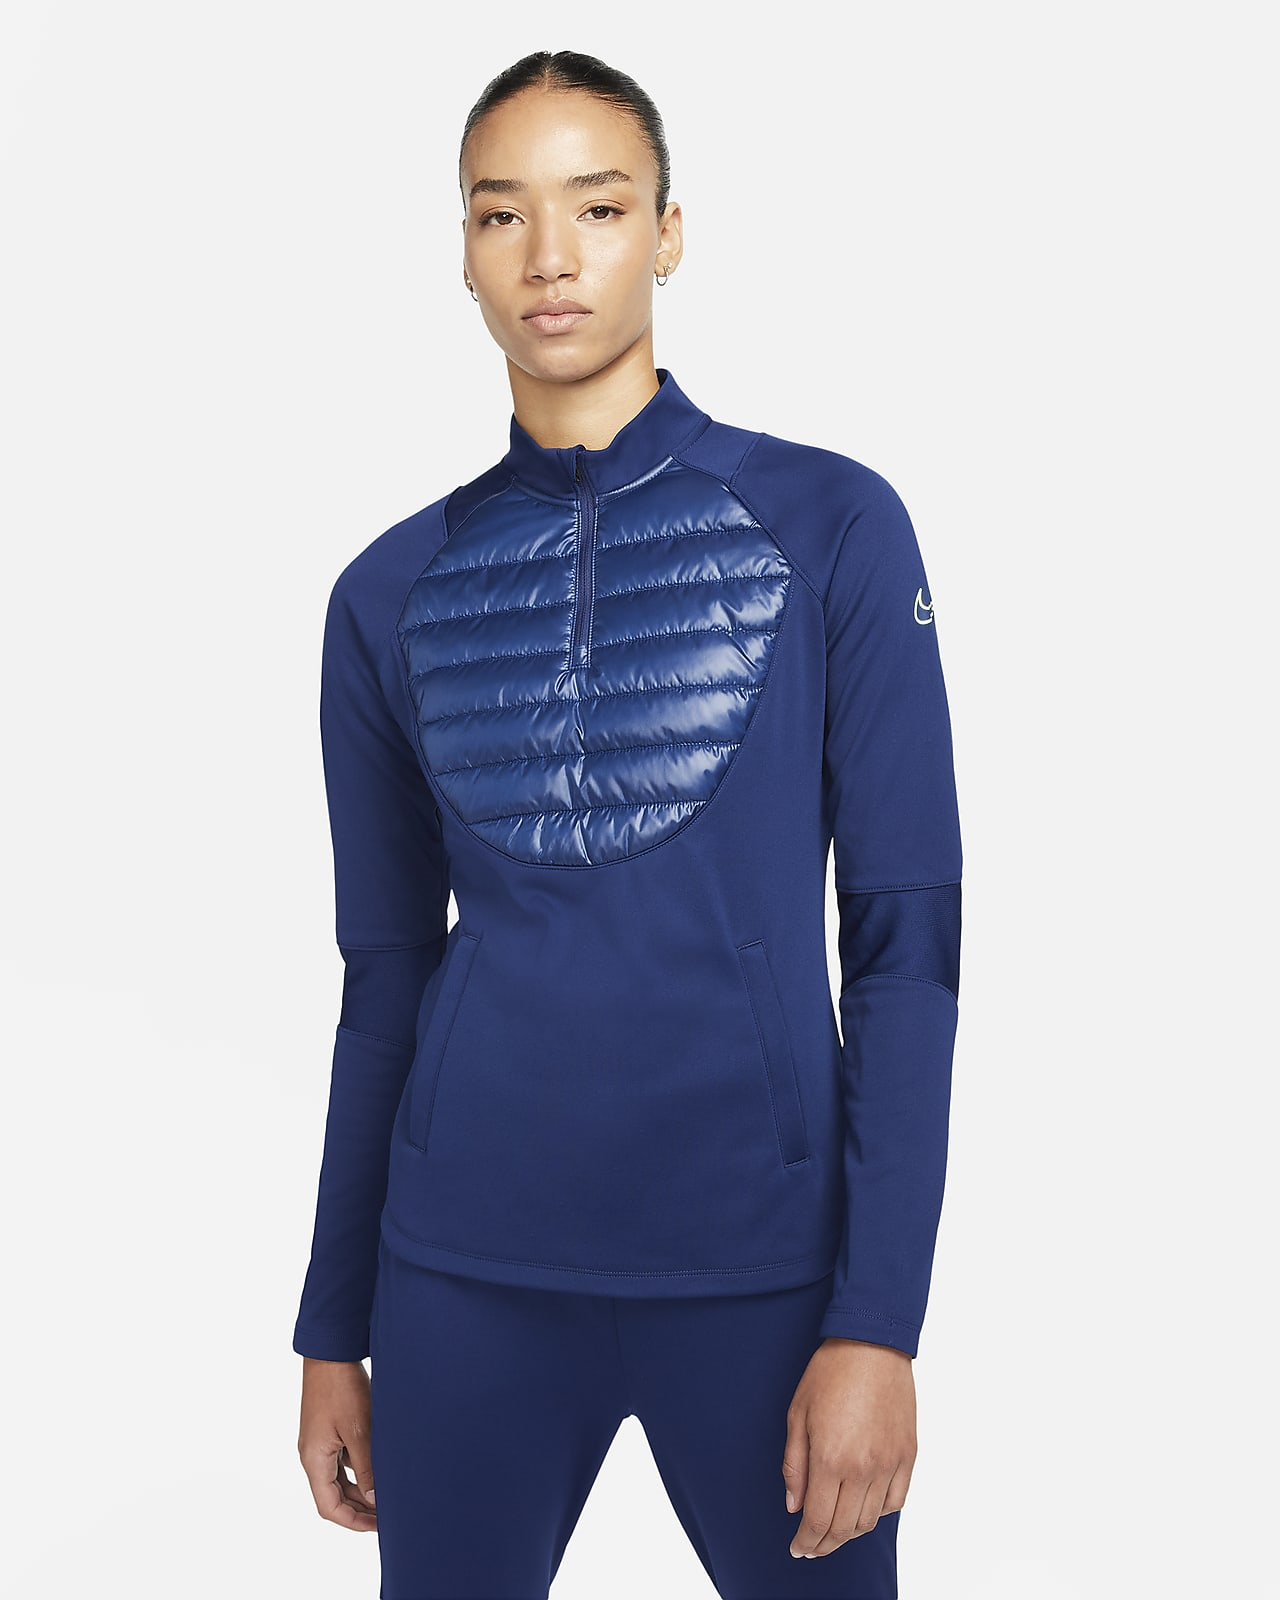 Nike Therma-FIT Academy Winter Warrior Women's Soccer Drill Top